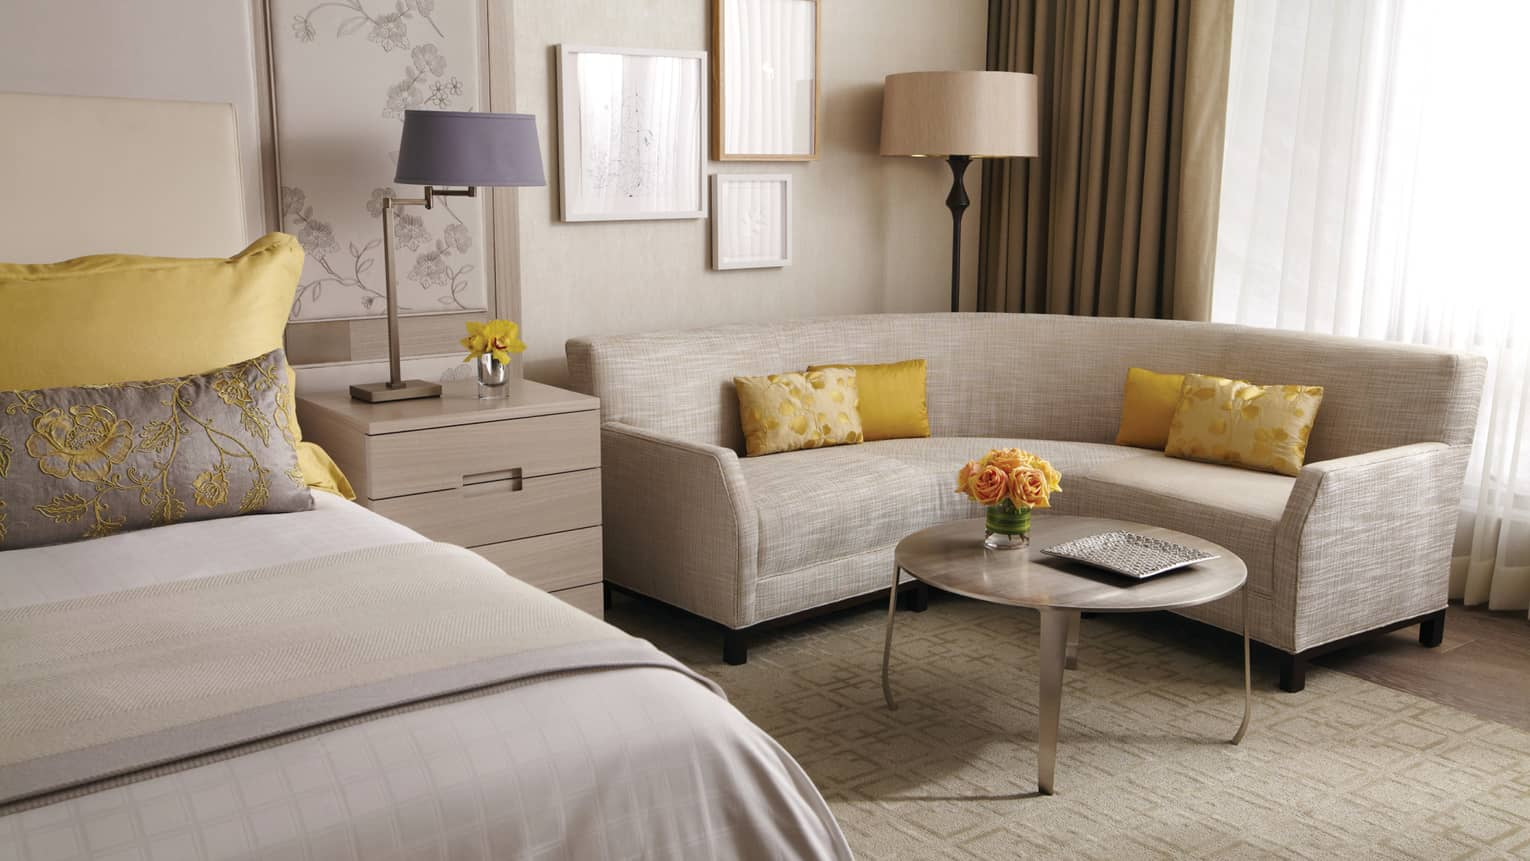 Yorkville Premier Room curved white sofa by bed, yellow accent pillows, yellow roses on table